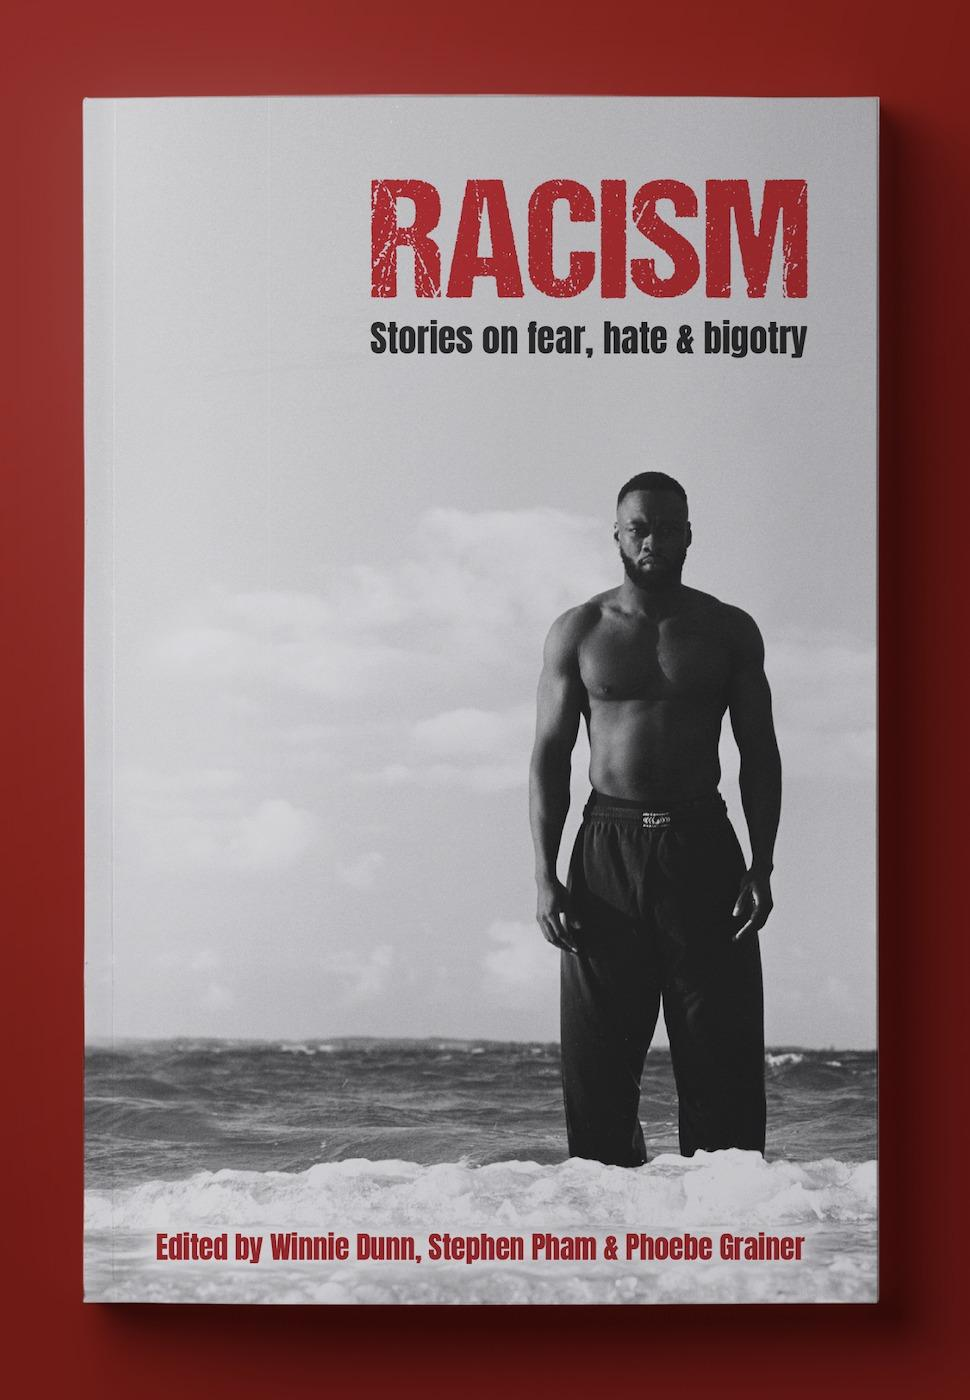 Racism: Stories on Fear, Hate and Bigotry